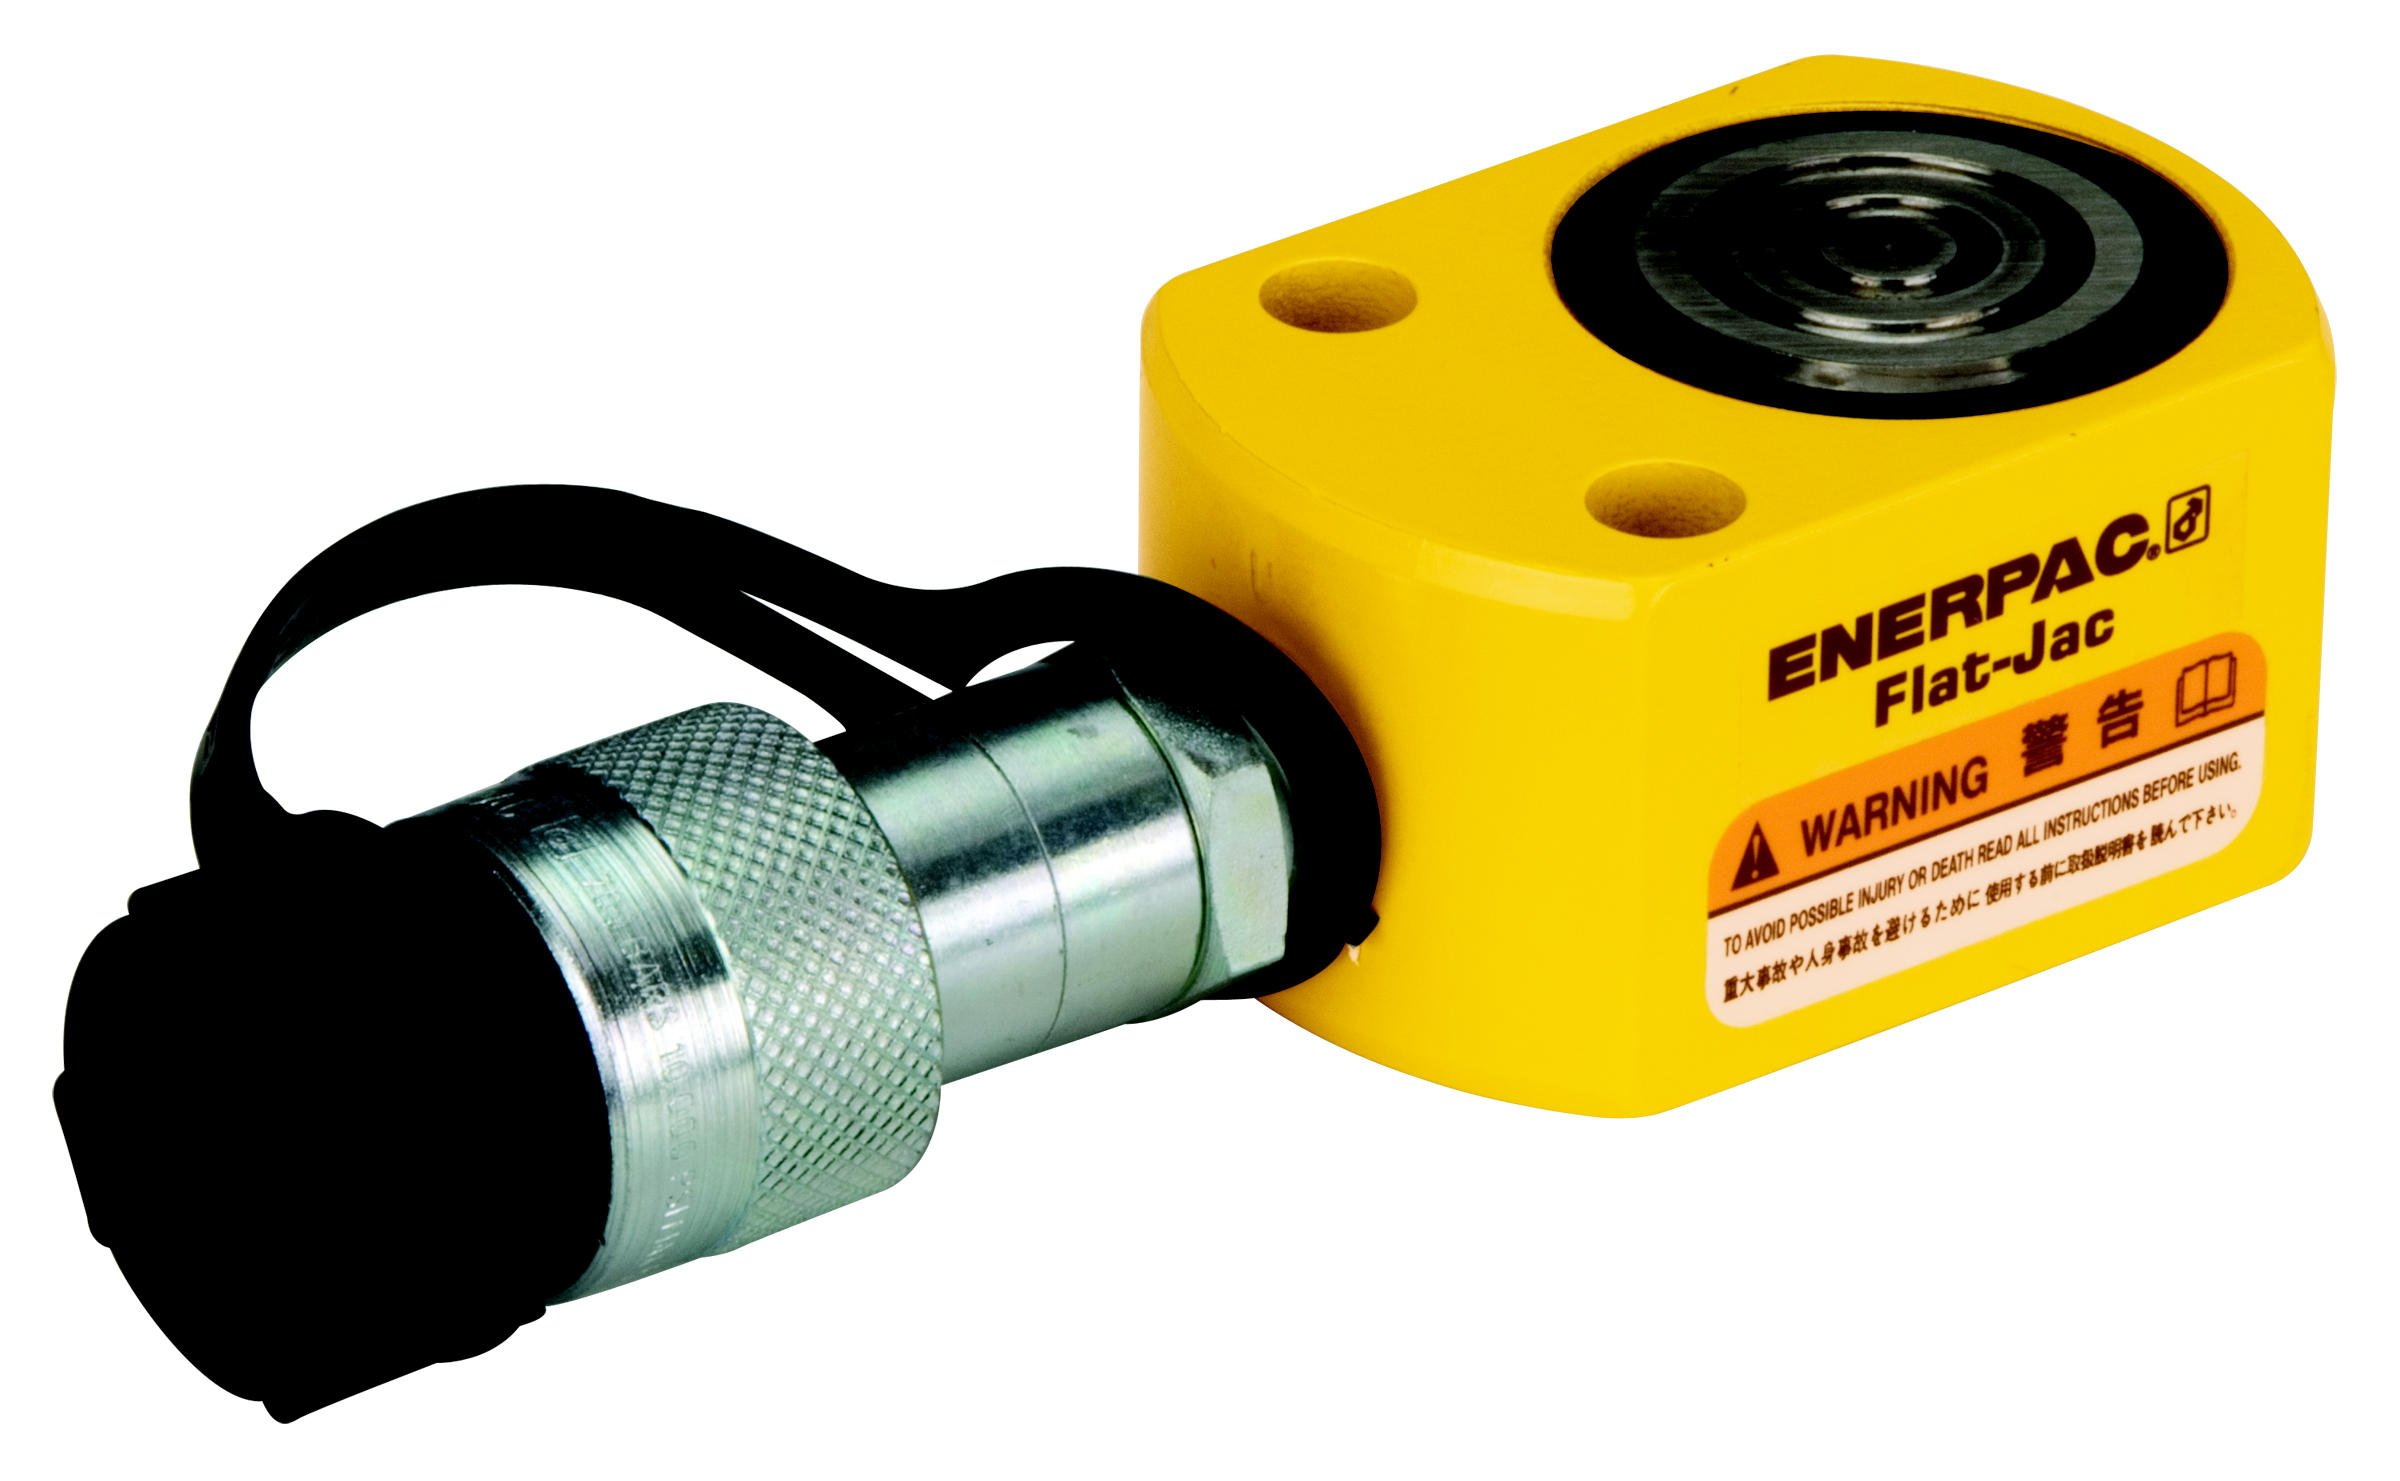 Enerpac RSM-100 10 Ton Low Height Flat Jack Cylinder